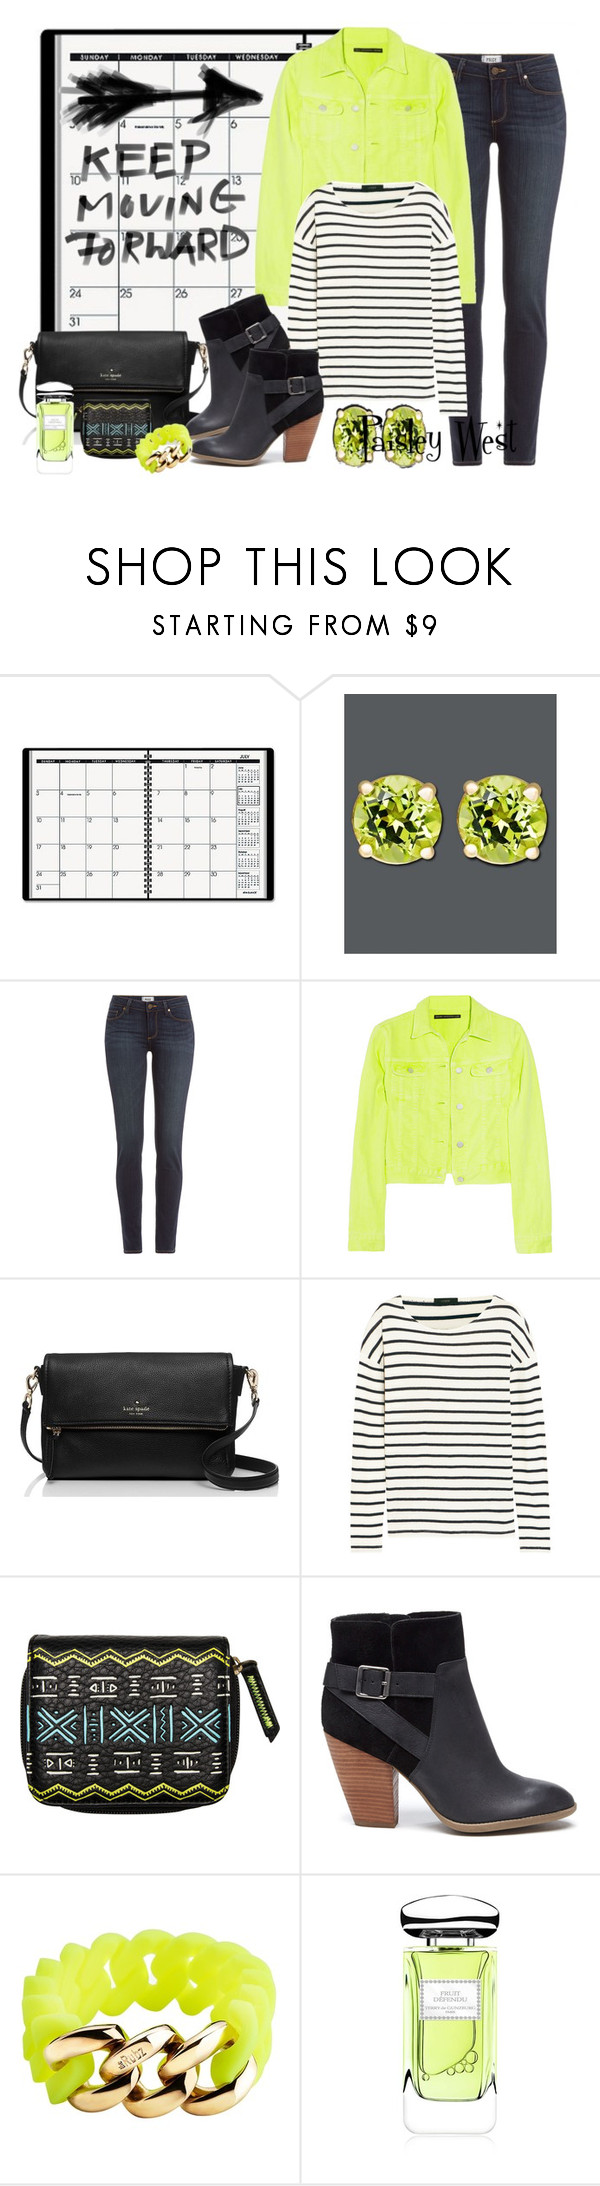 """""""Forever A Memory"""" by paisleywest ❤ liked on Polyvore featuring ACCO, Paige Denim, Christopher Kane, Kate Spade, J.Crew, Billabong, Sole Society, The Rubz and Terry de Gunzburg"""